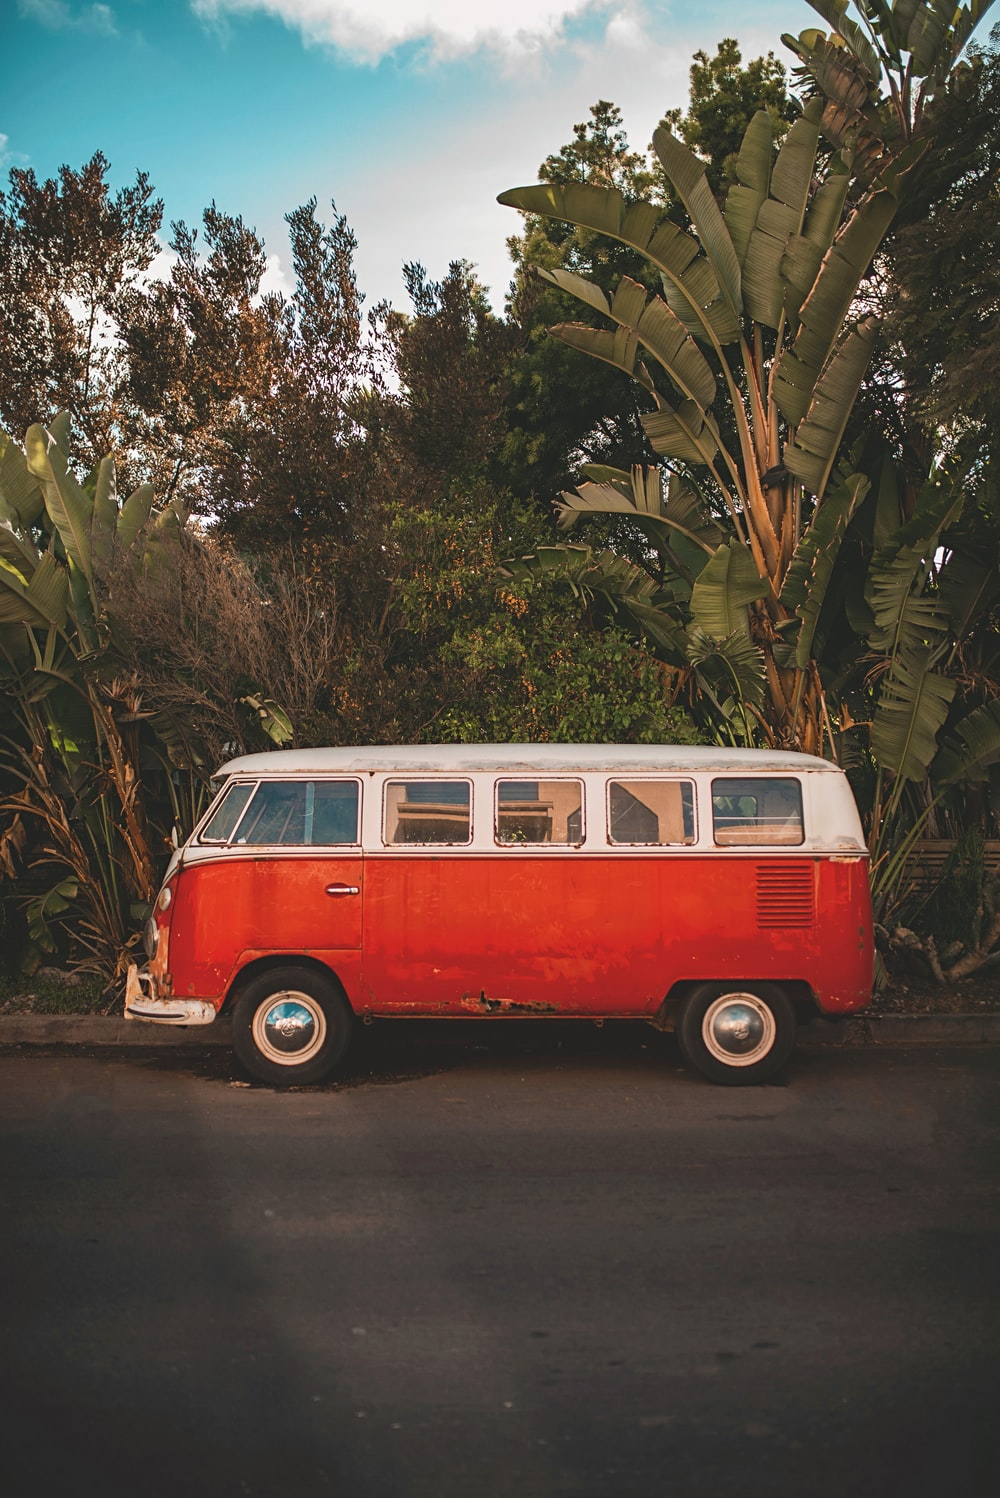 red and white volkswagen t-2 van parked beside green palm tree during daytime